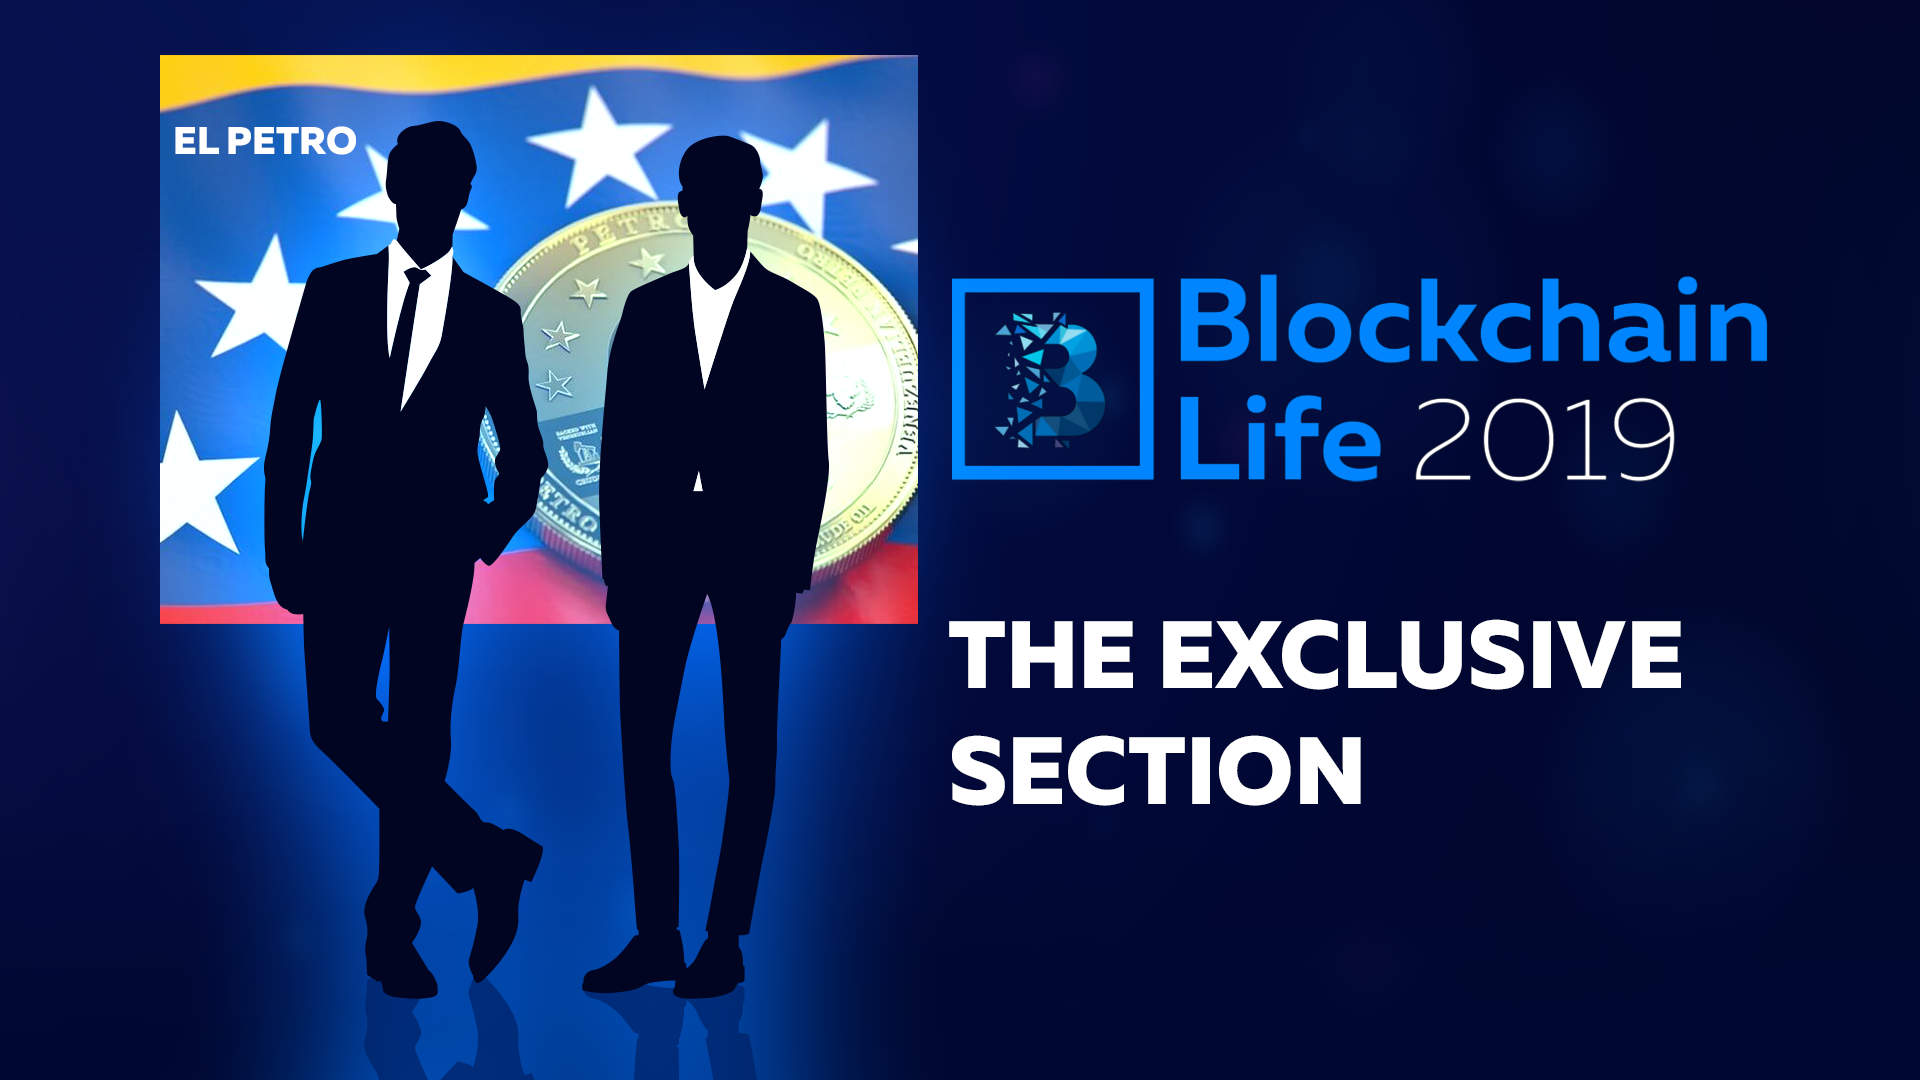 Blockchain Life Event in Moscow 2019